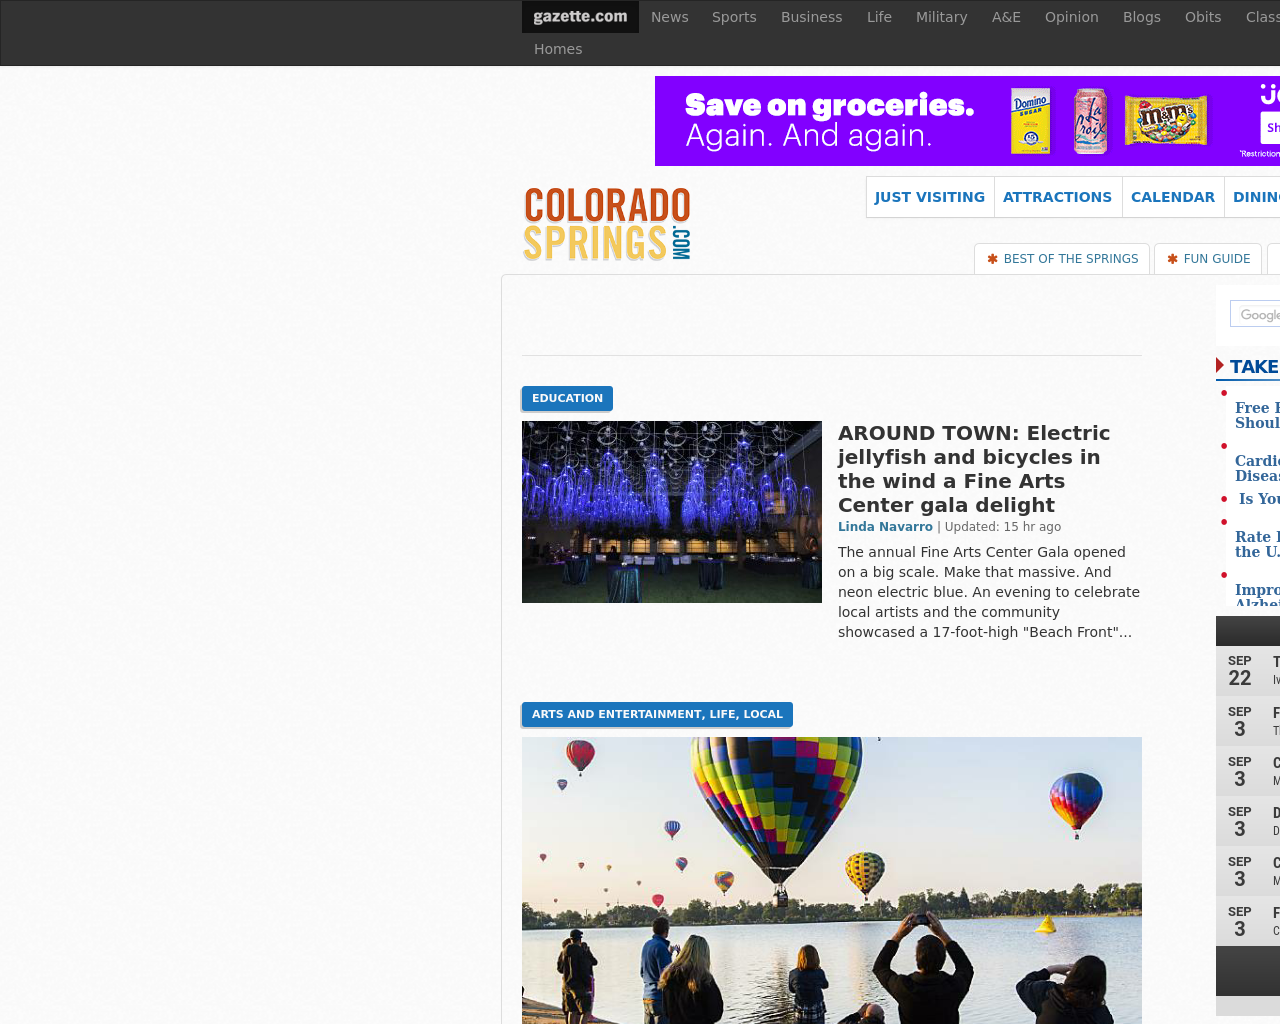 ColoradoSprings.com-Advertising-Reviews-Pricing